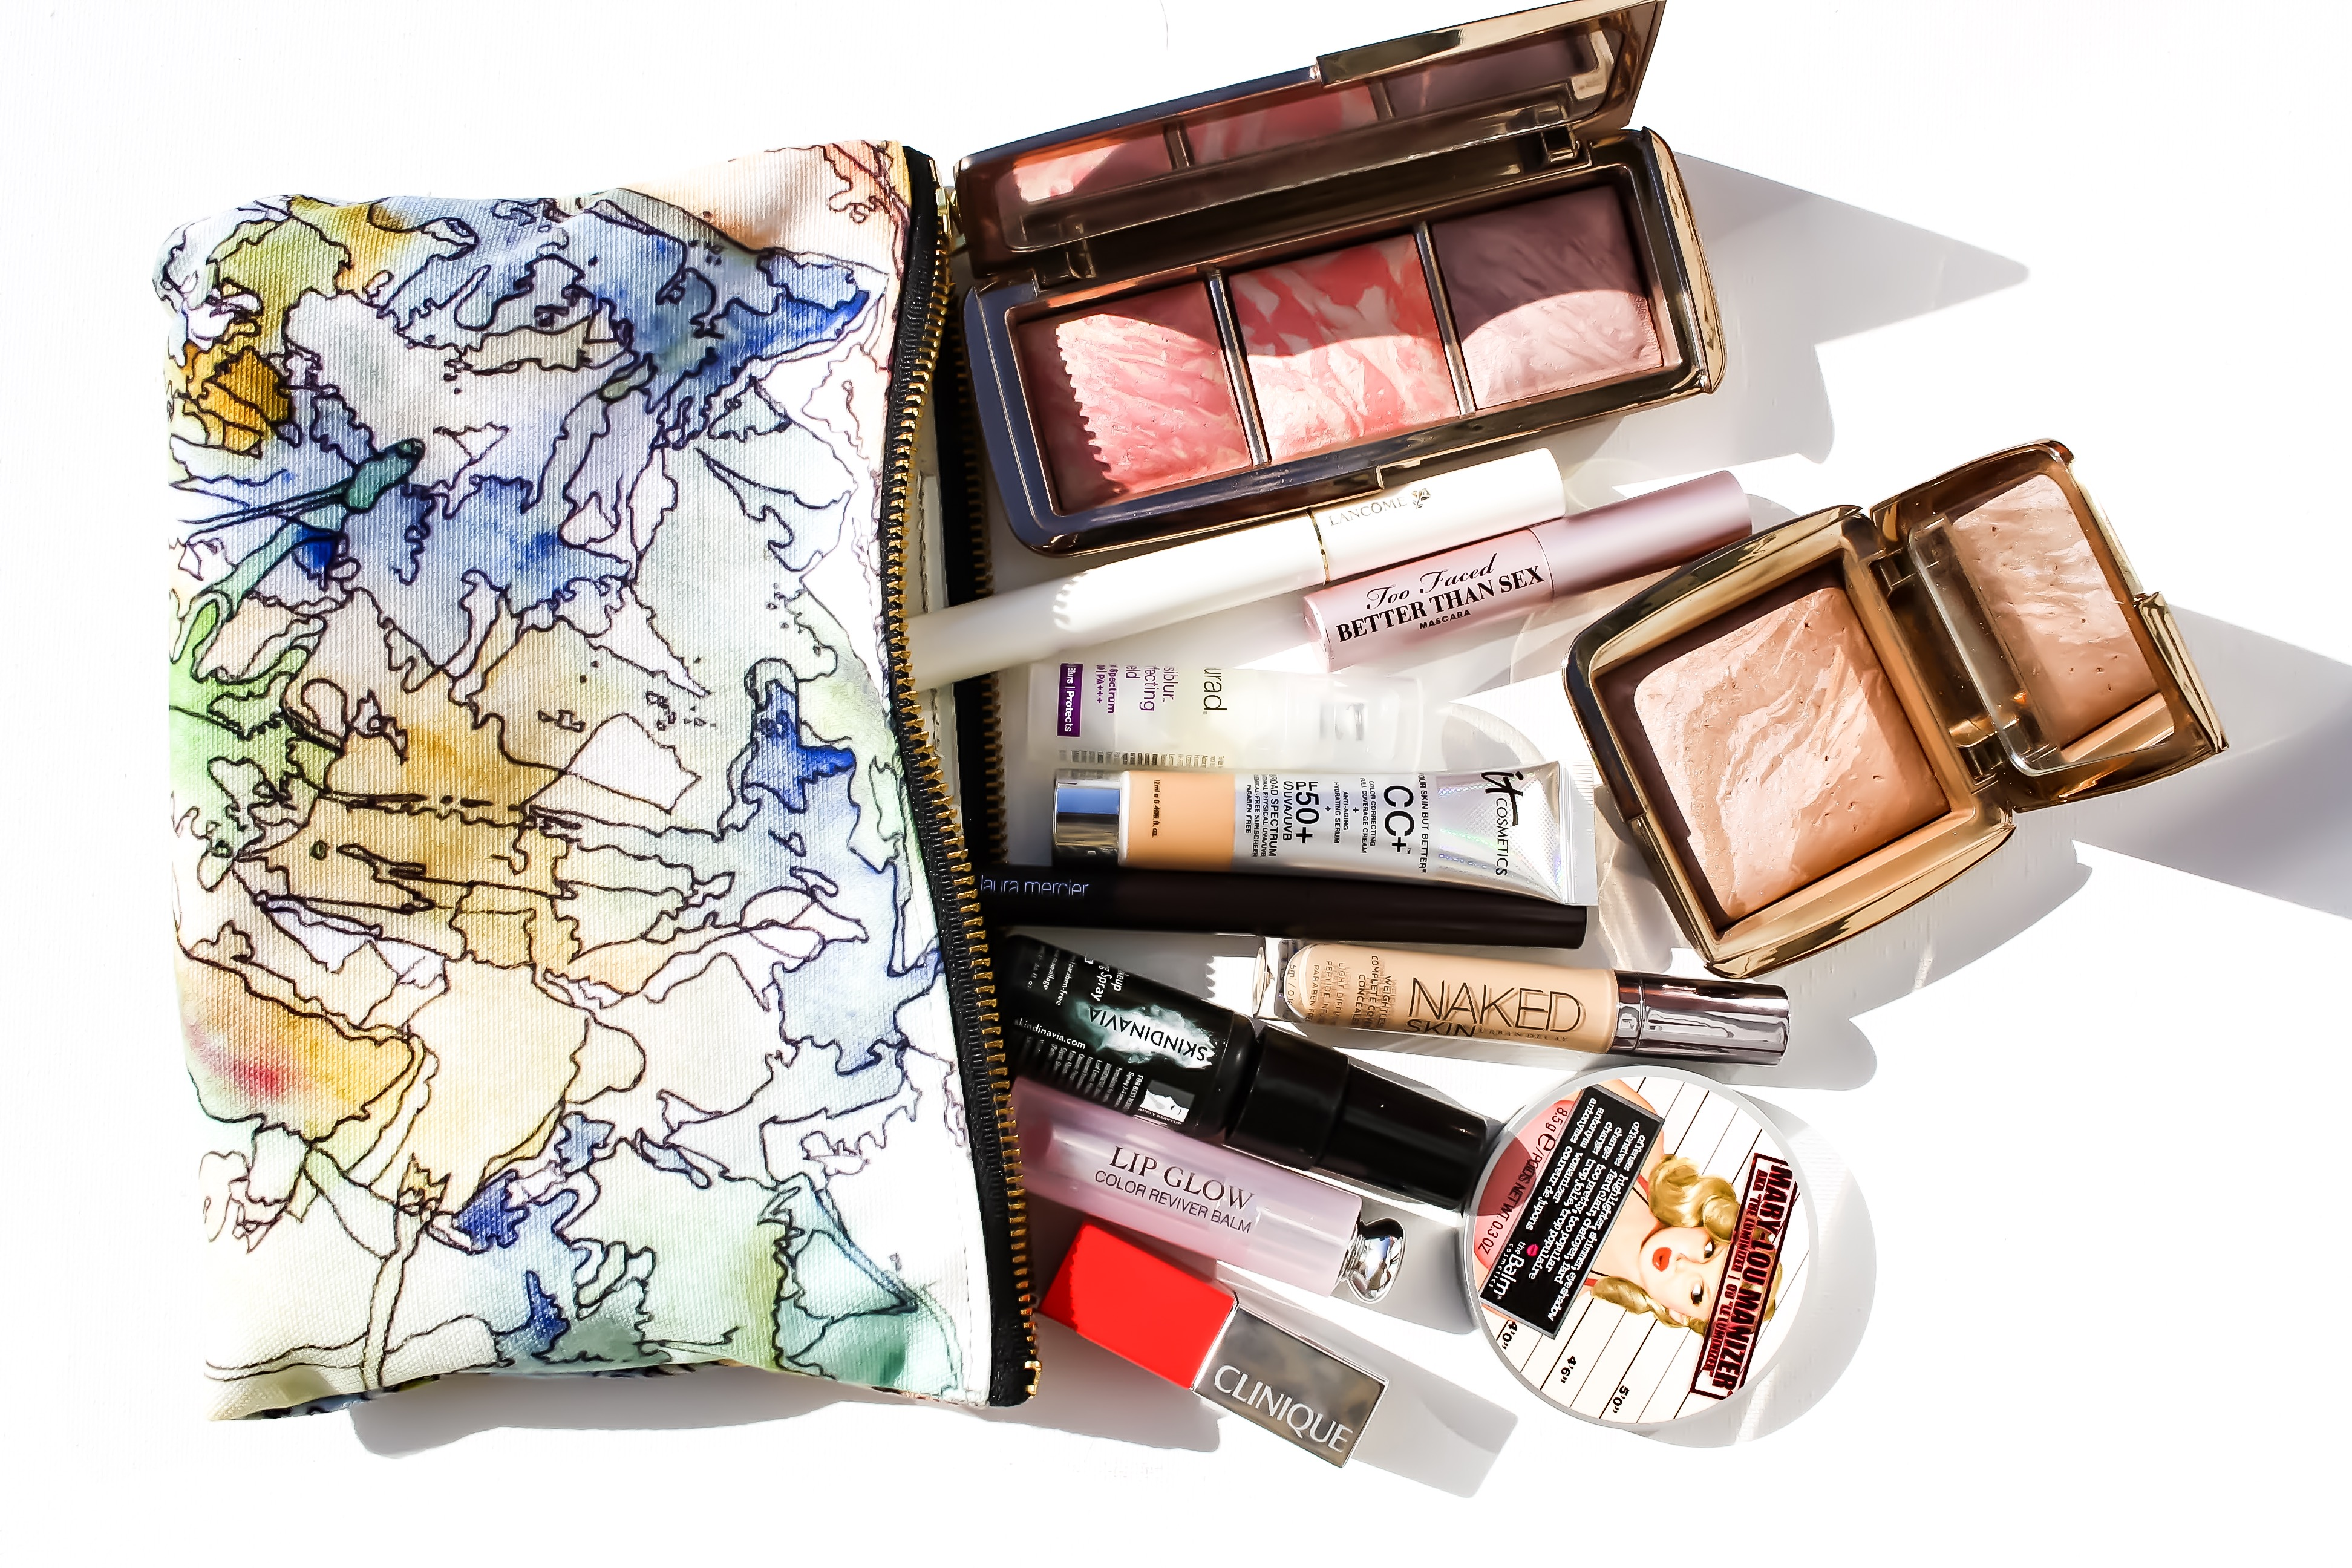 Beach makeup flat lay